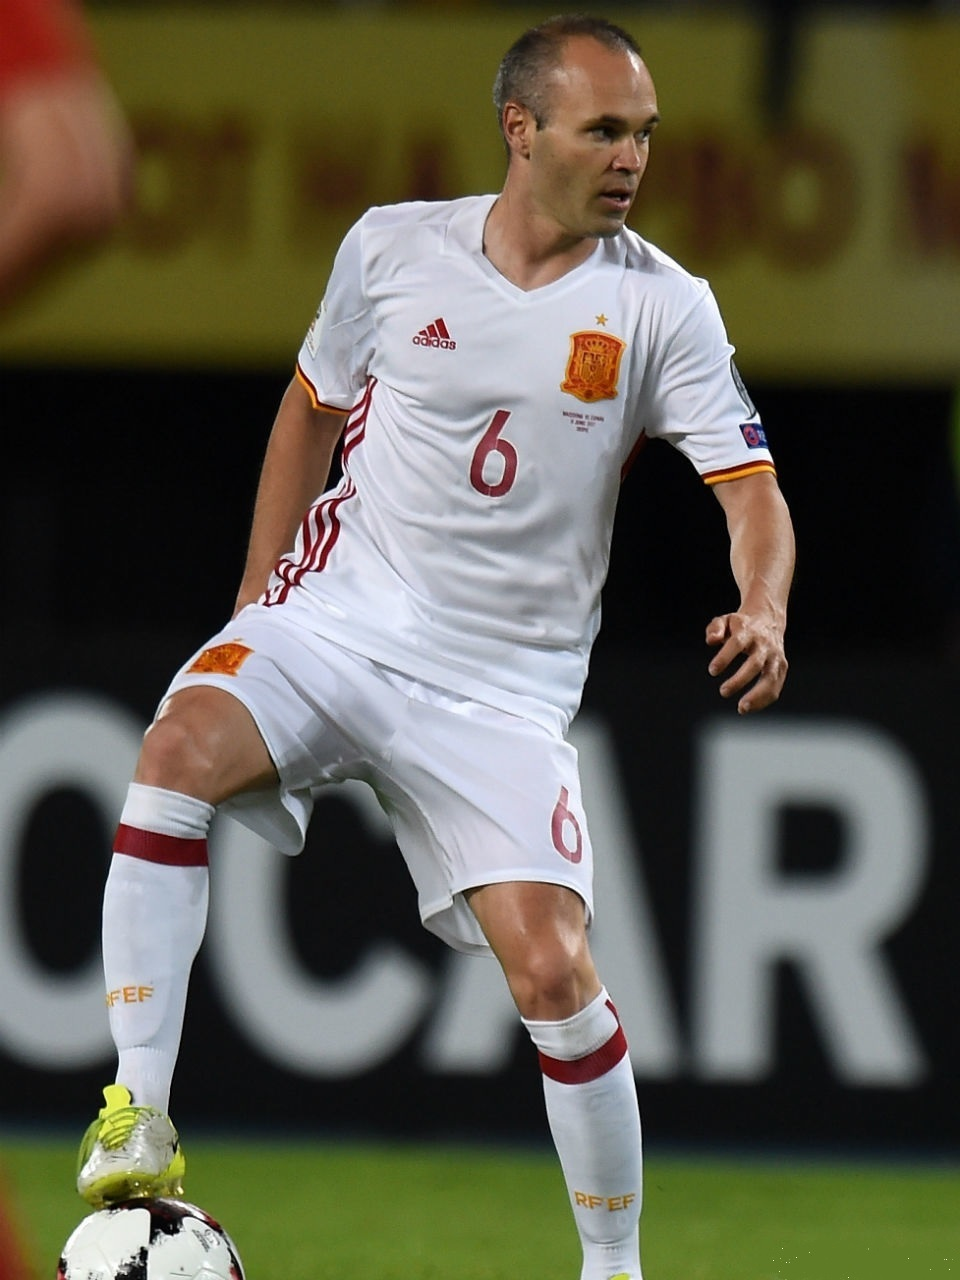 Andres-Iniesta-2017-adidas-world-cup-qualifier-away-kit.jpg